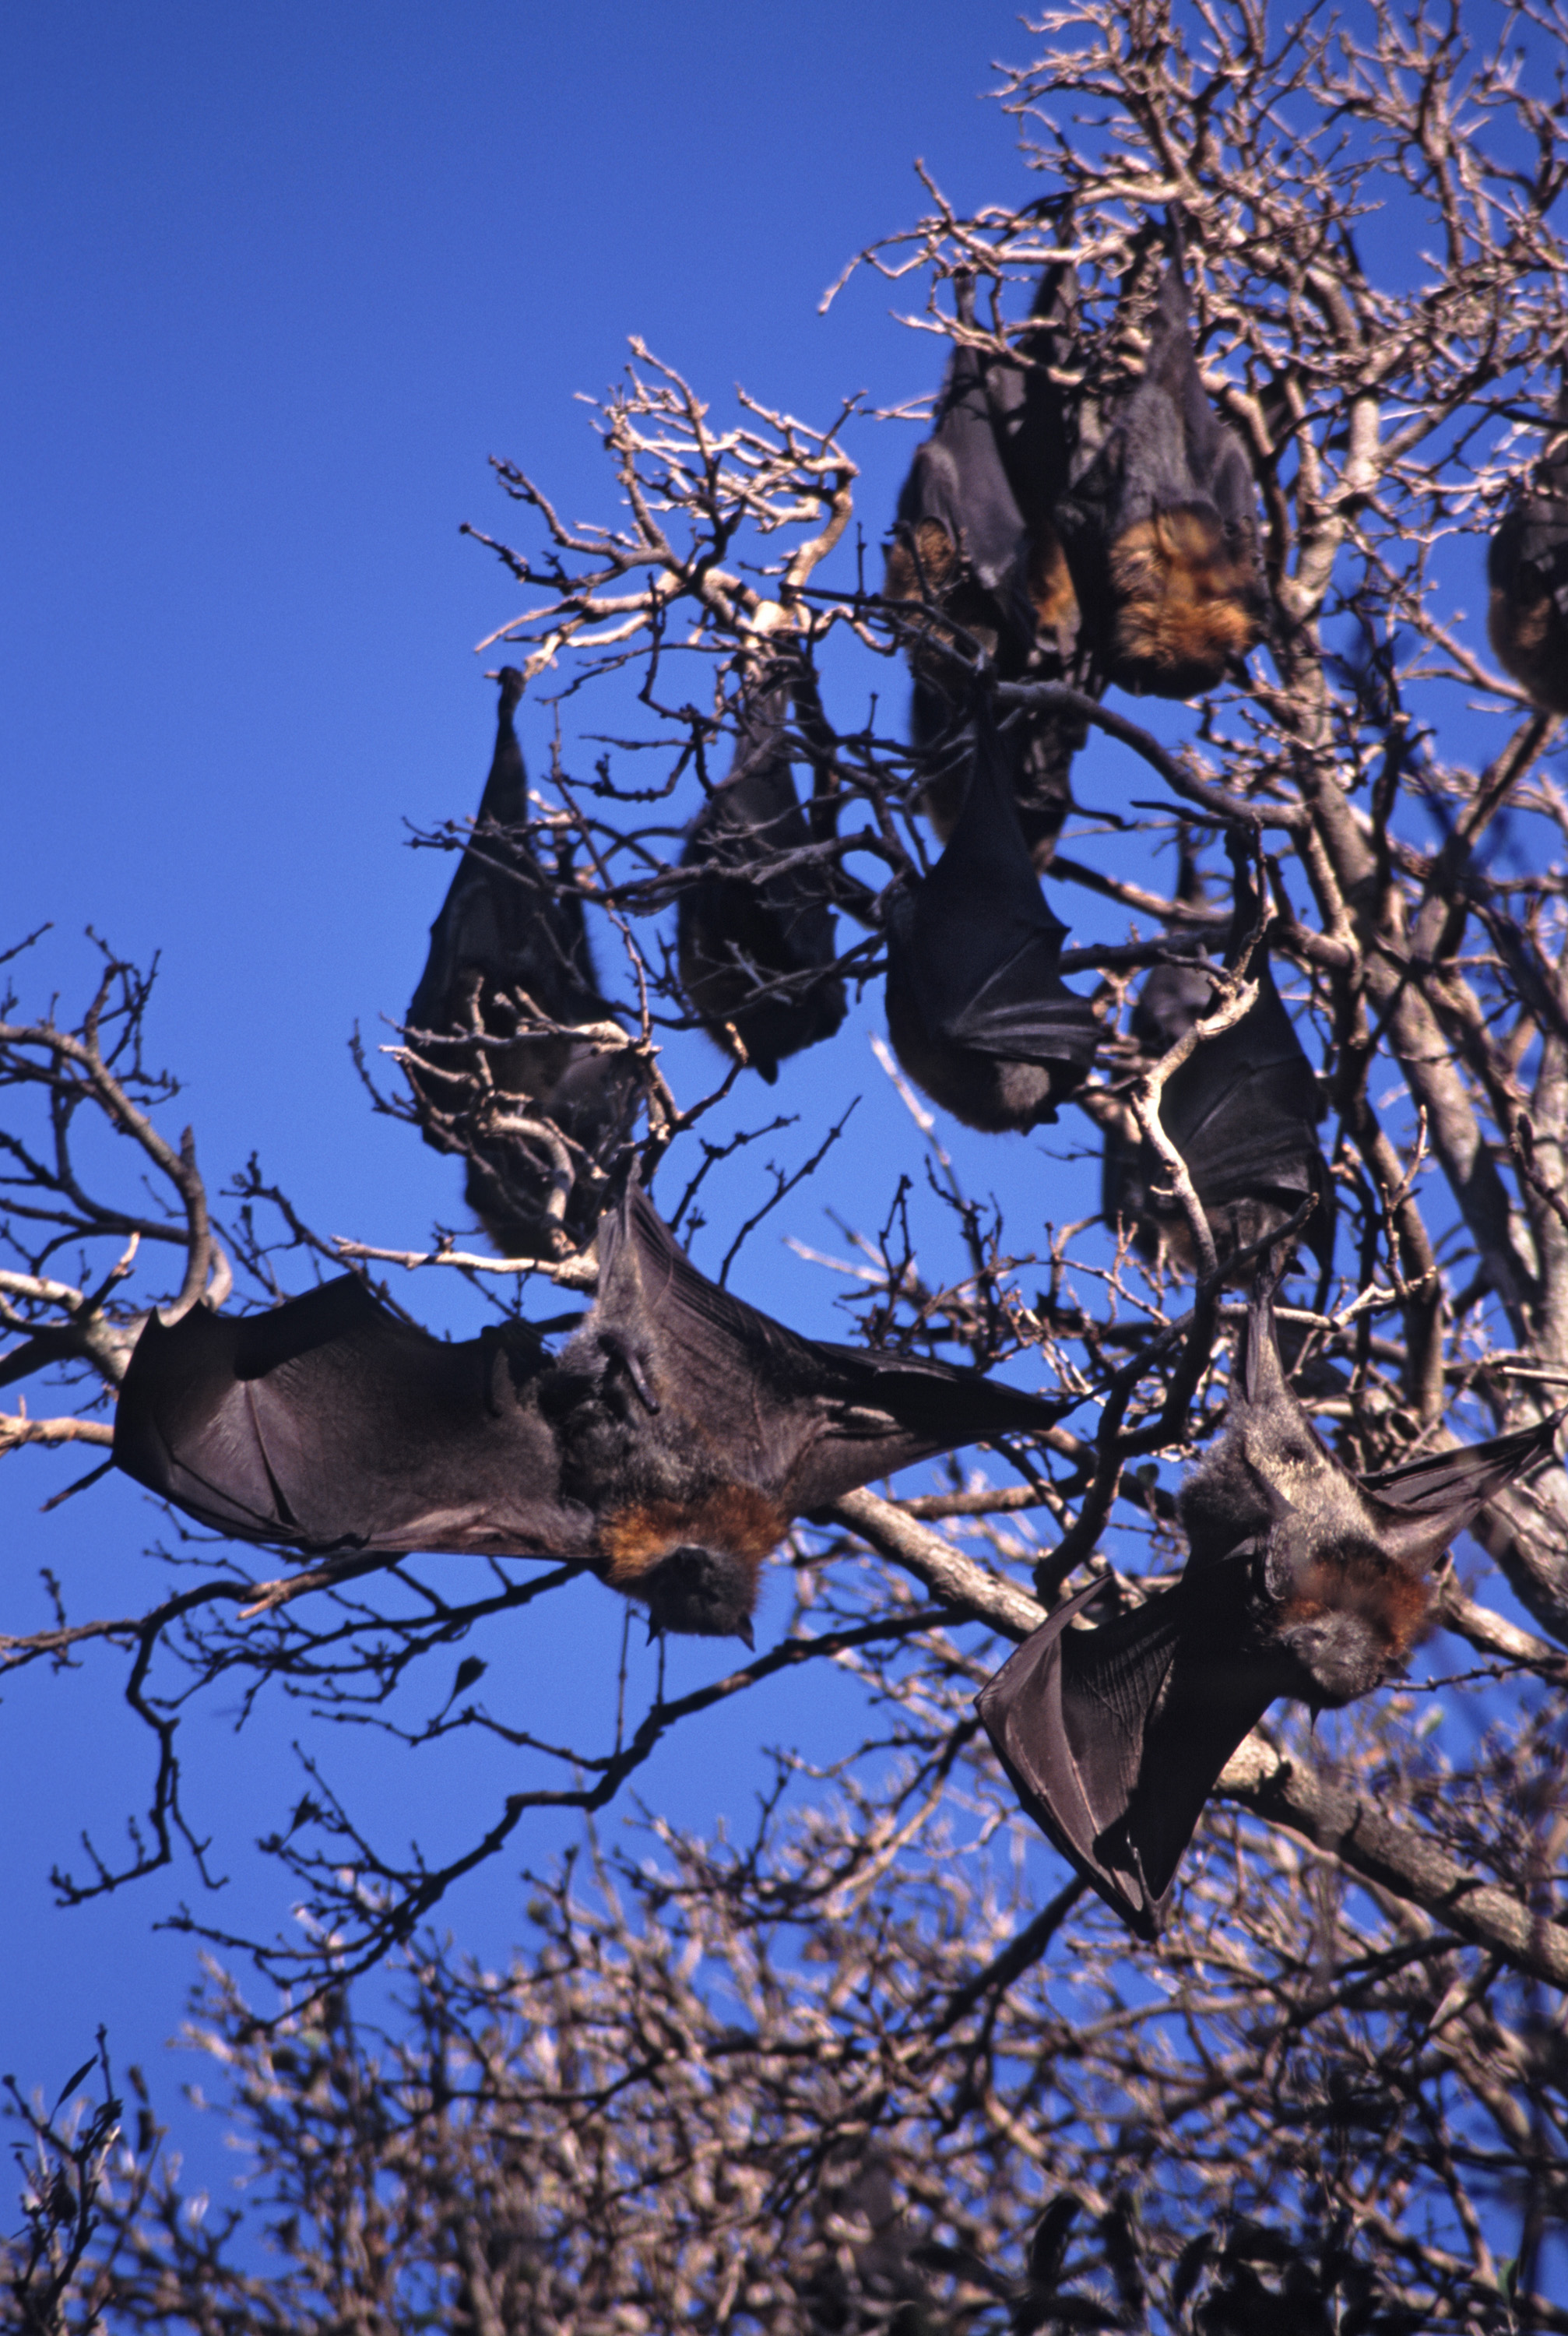 bats hanging in trees with a blue sky background